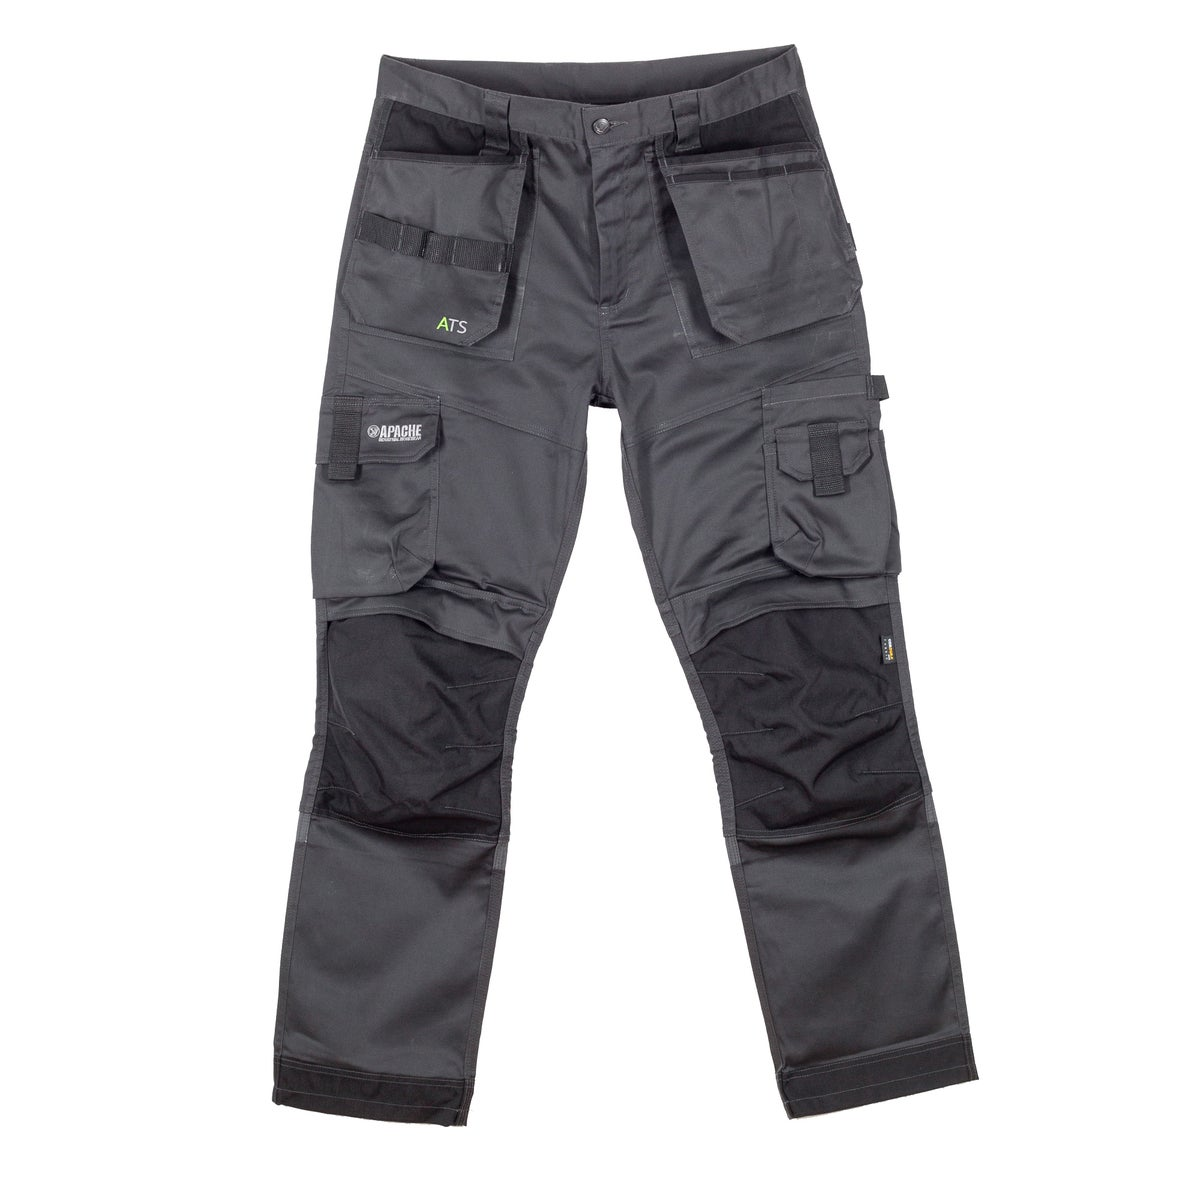 Image of ATS 3D STRETCH HOLSTER TROUSER GREY